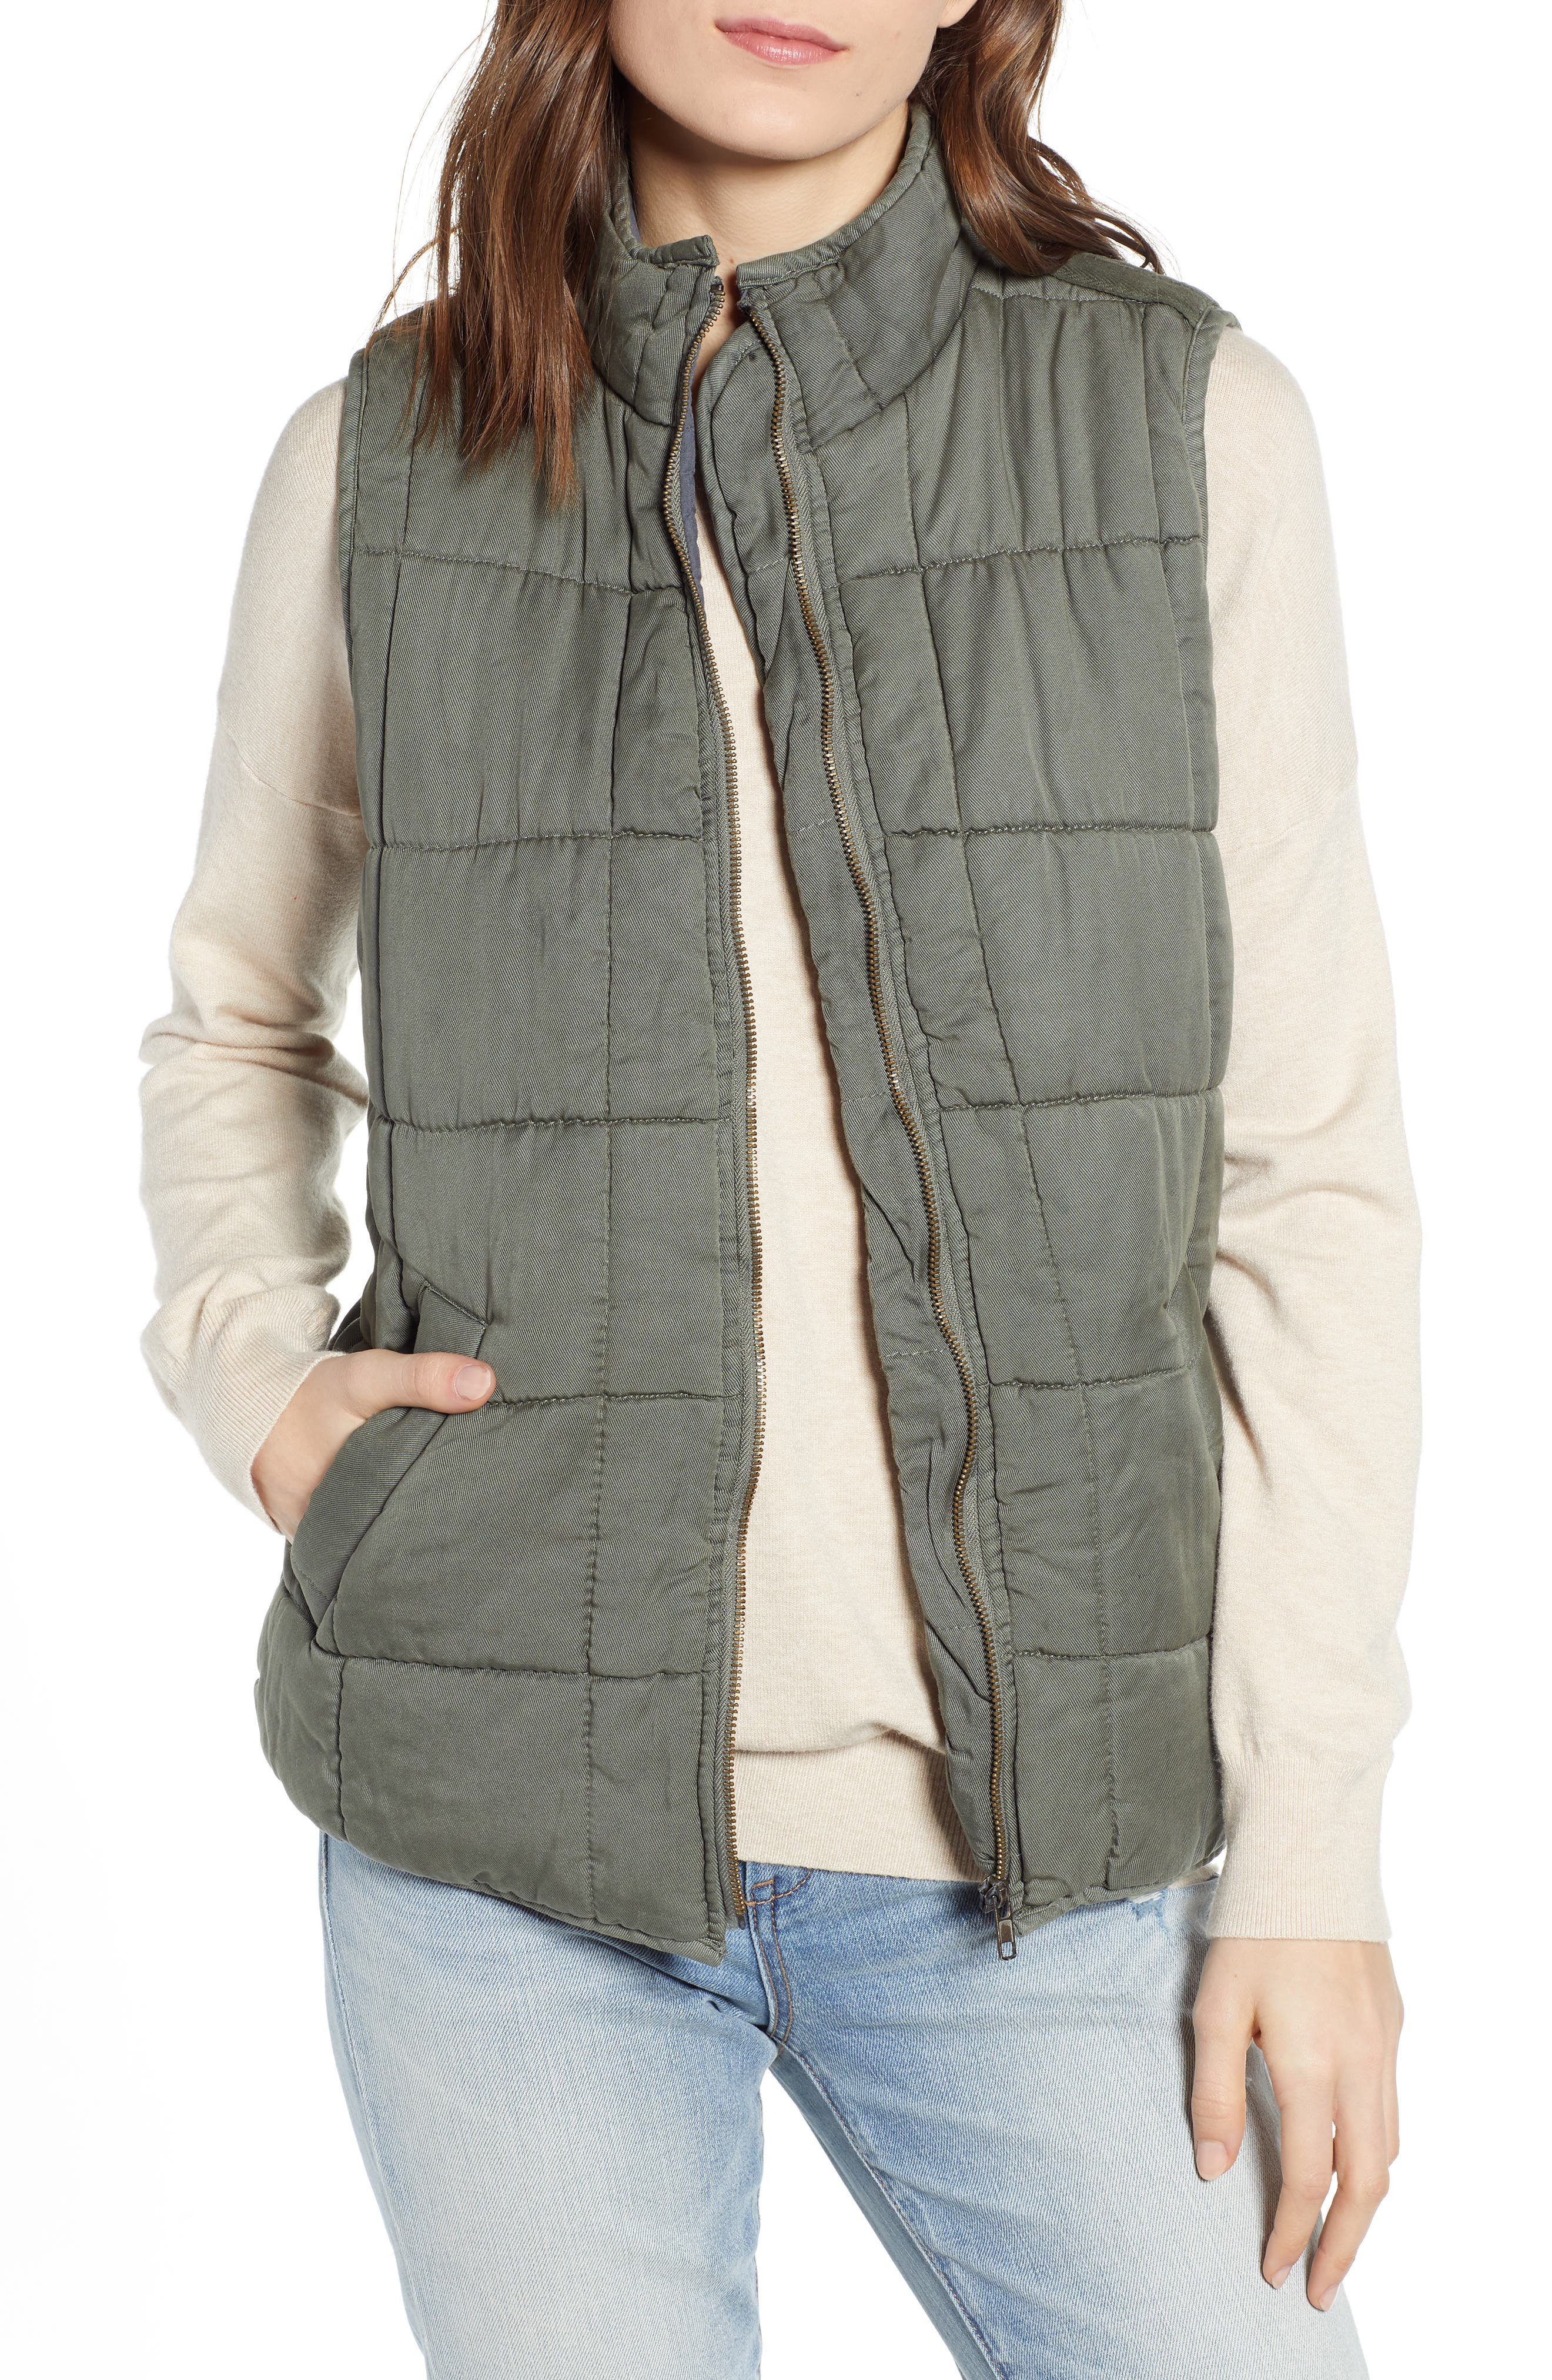 Thread & Supply Kensington Quilted Vest, Green